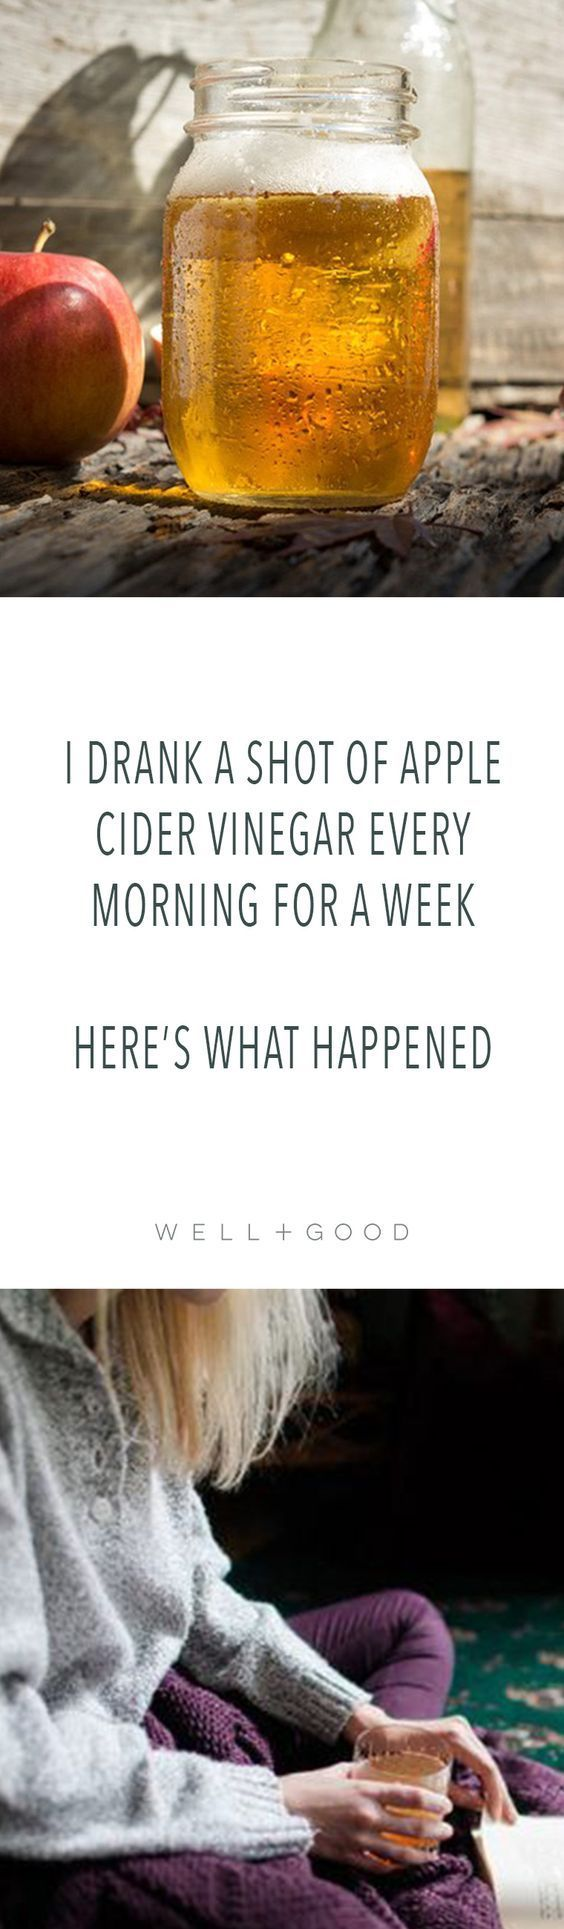 The benefits of drinking apple cider vinegar ACV every morning